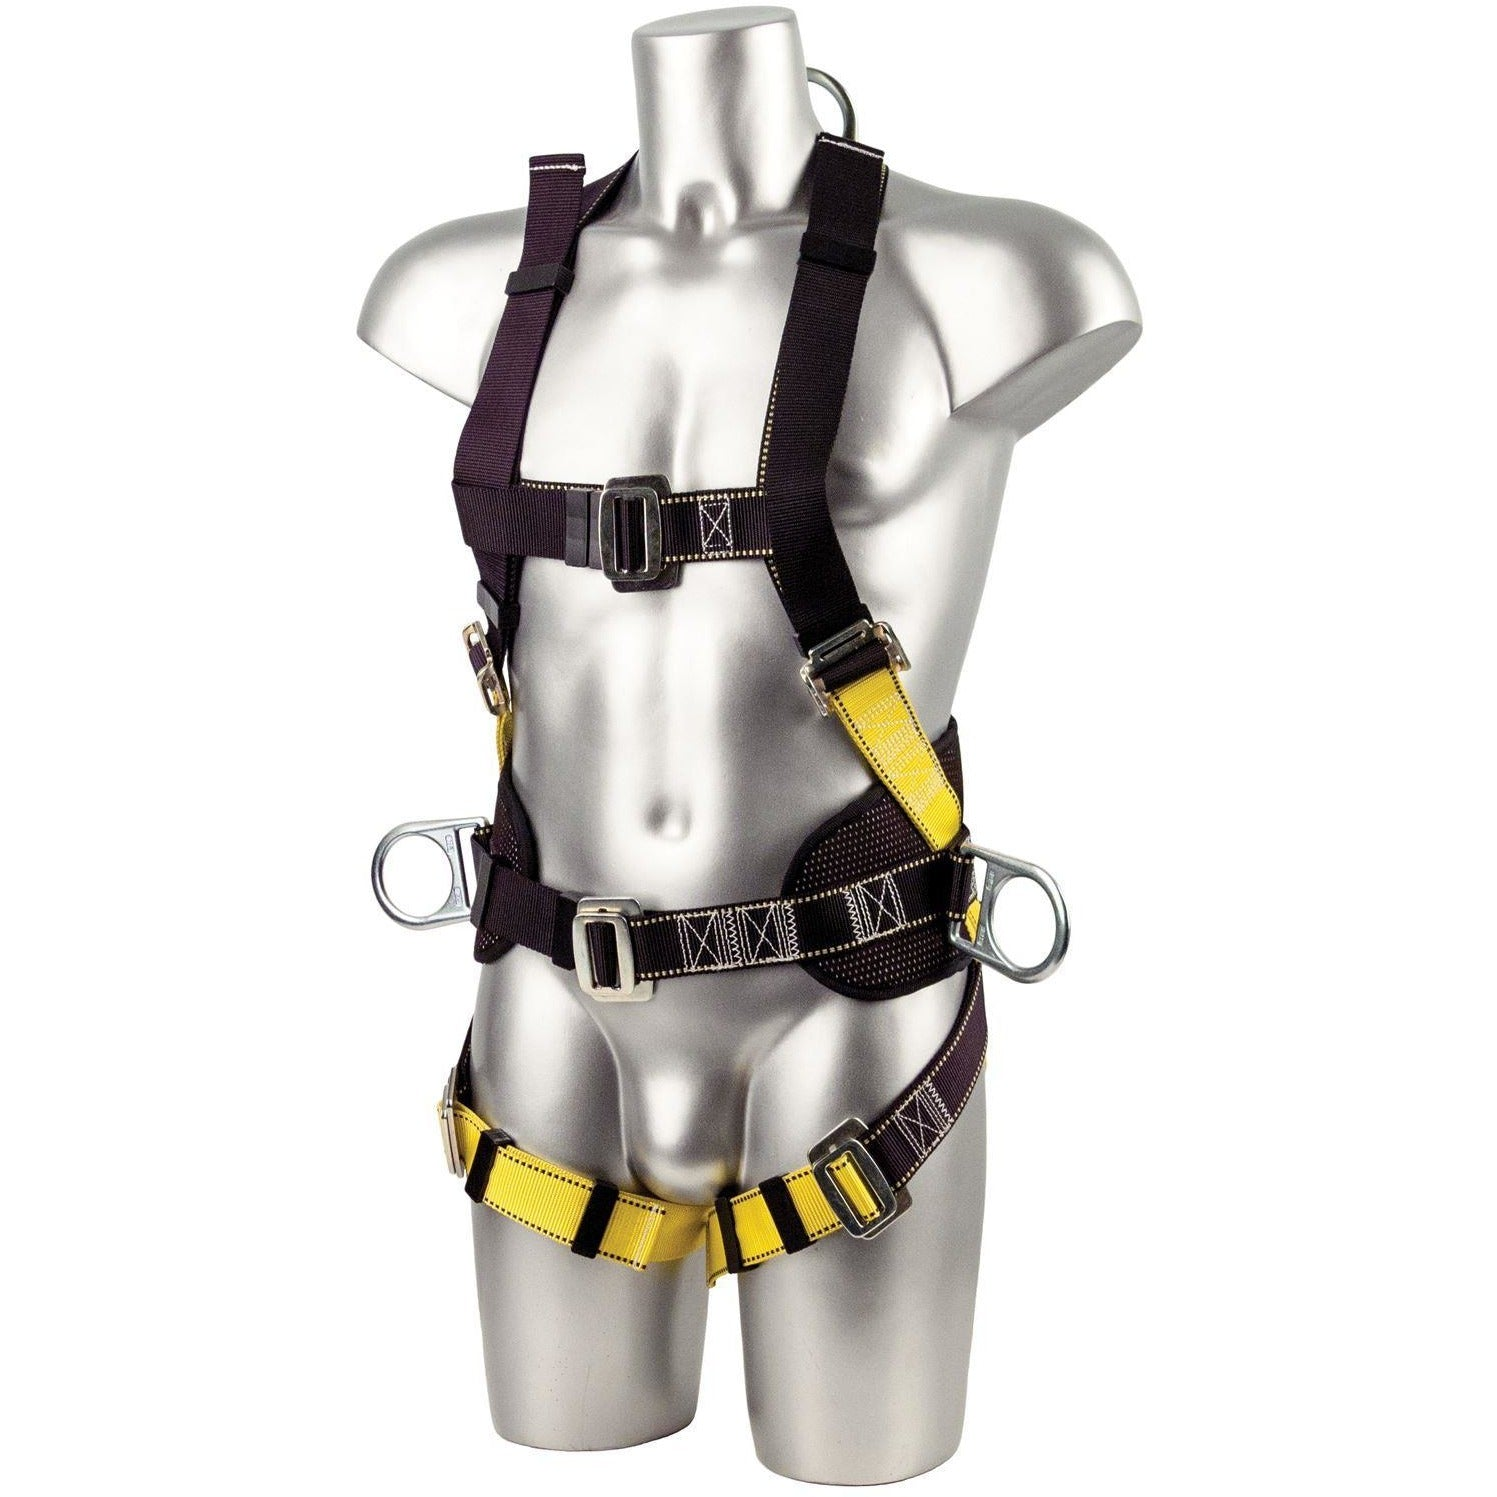 Portwest Portwest 2 Point Harness Comfort Plus Black One Size  FP15